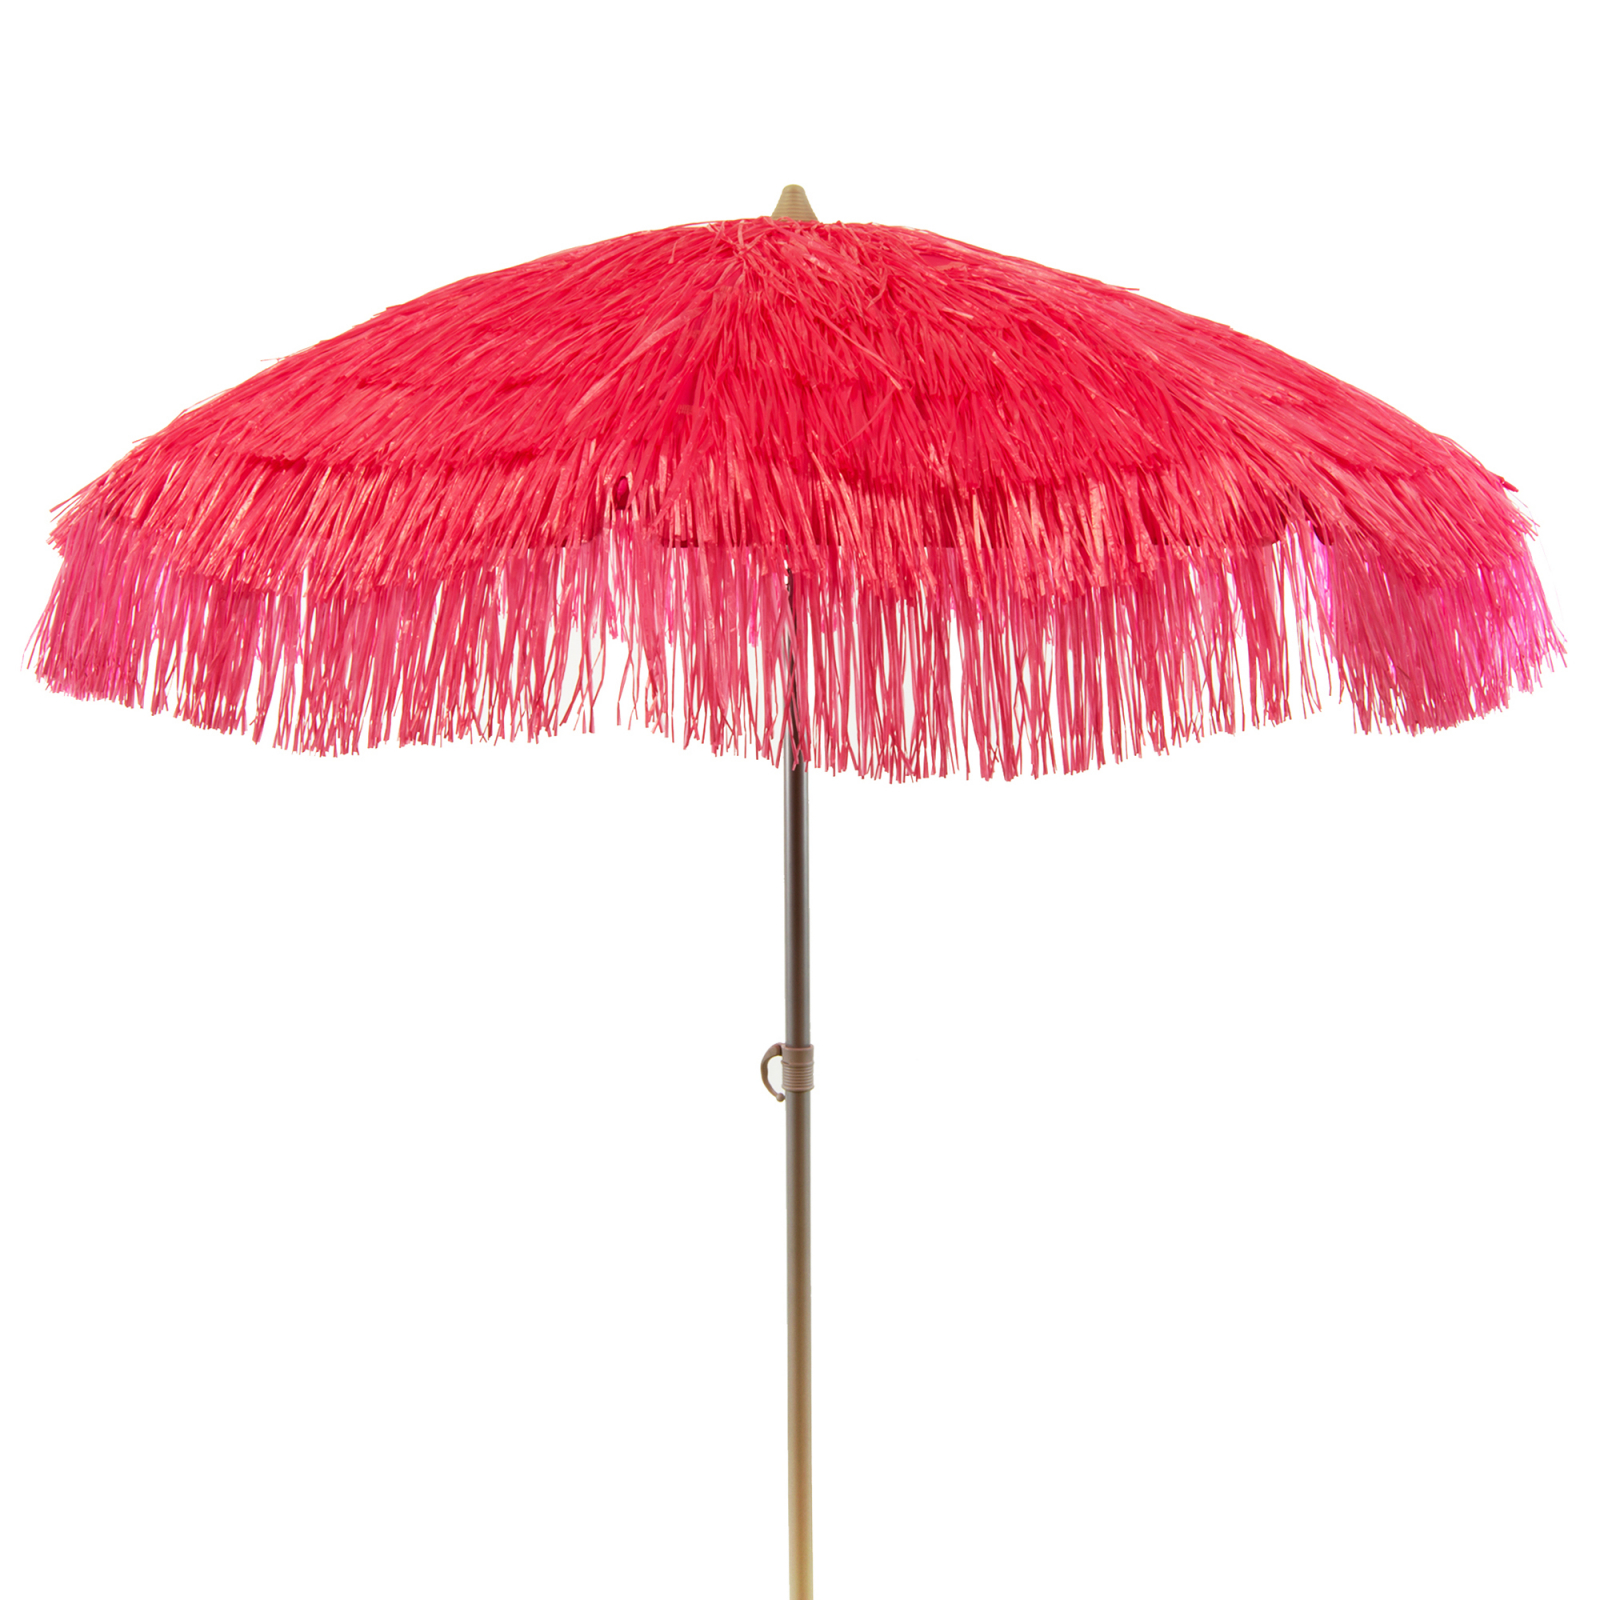 Palapa Tiki Party Umbrella Patio Tilt Home Canopy Sun Shield 6 Feet - Hot Pink